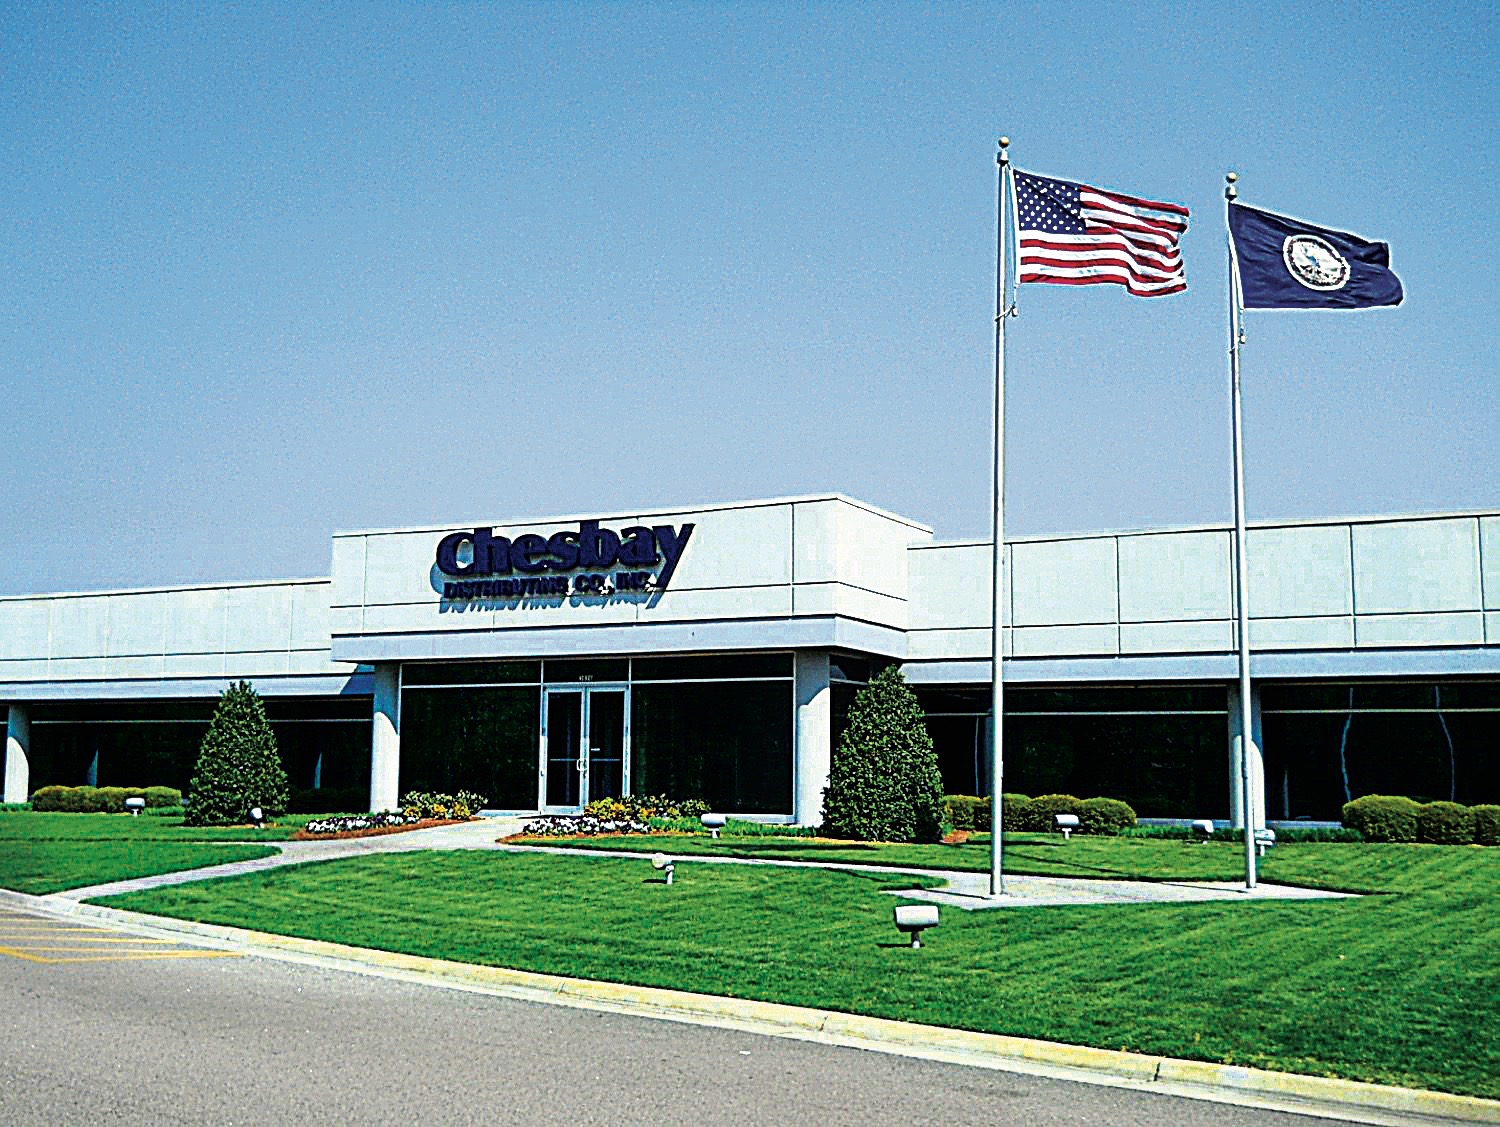 Chesbay Distributing, Chesapeake, Best Places to Work